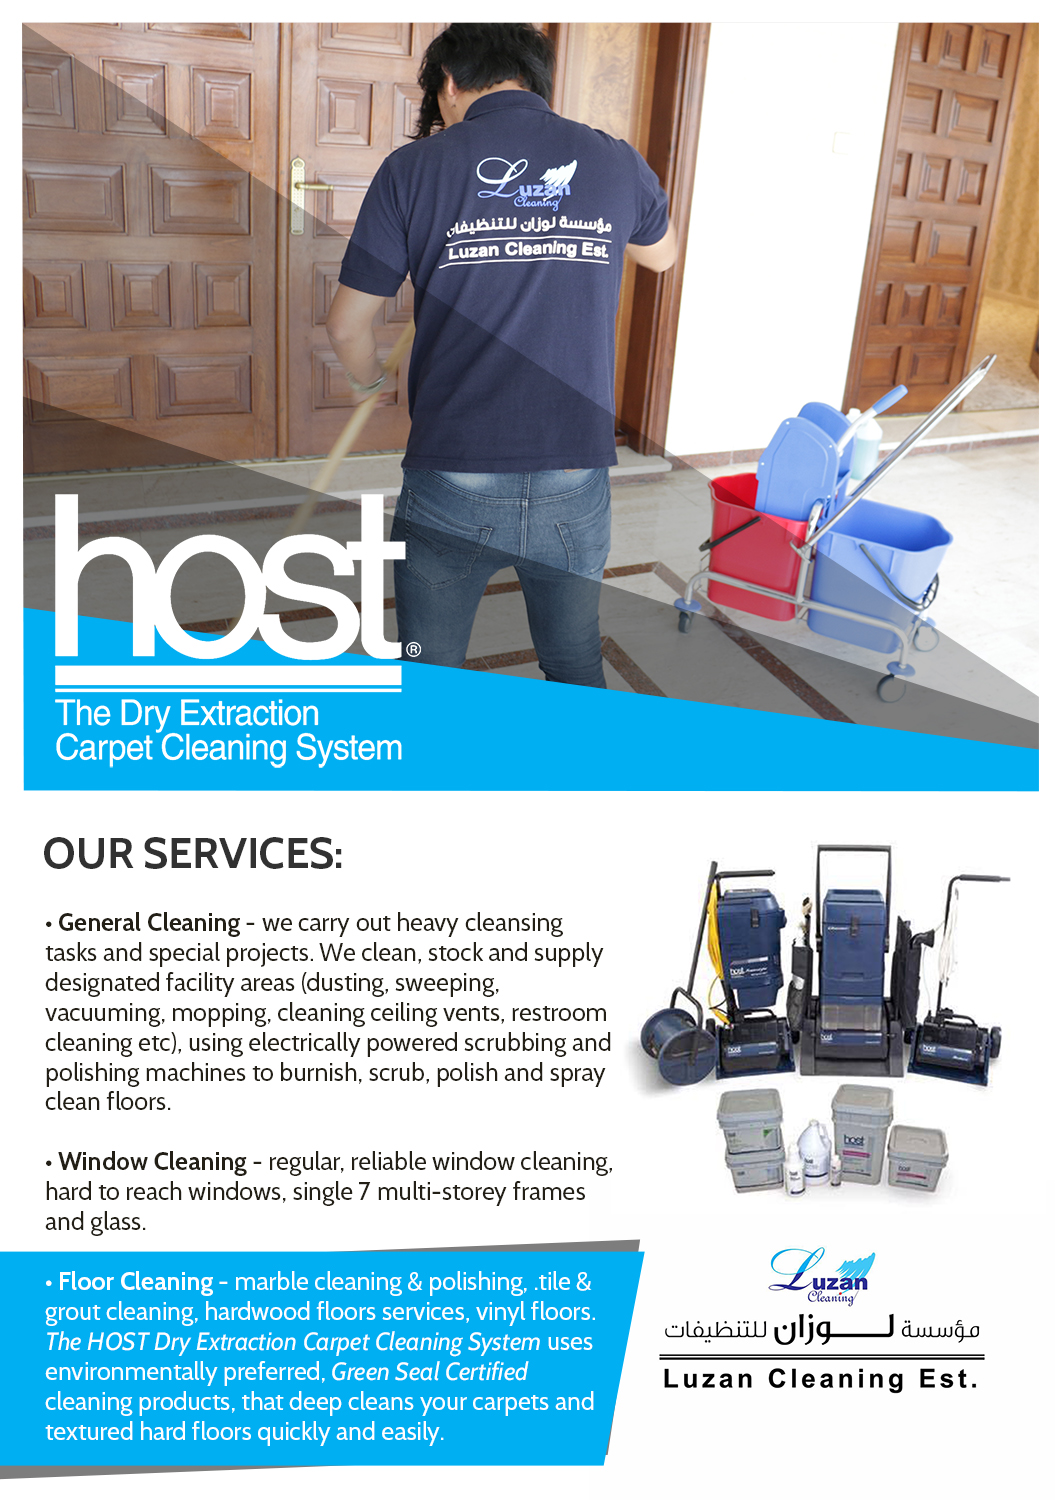 Elegant, Playful, Cleaning Service Flyer Design for a